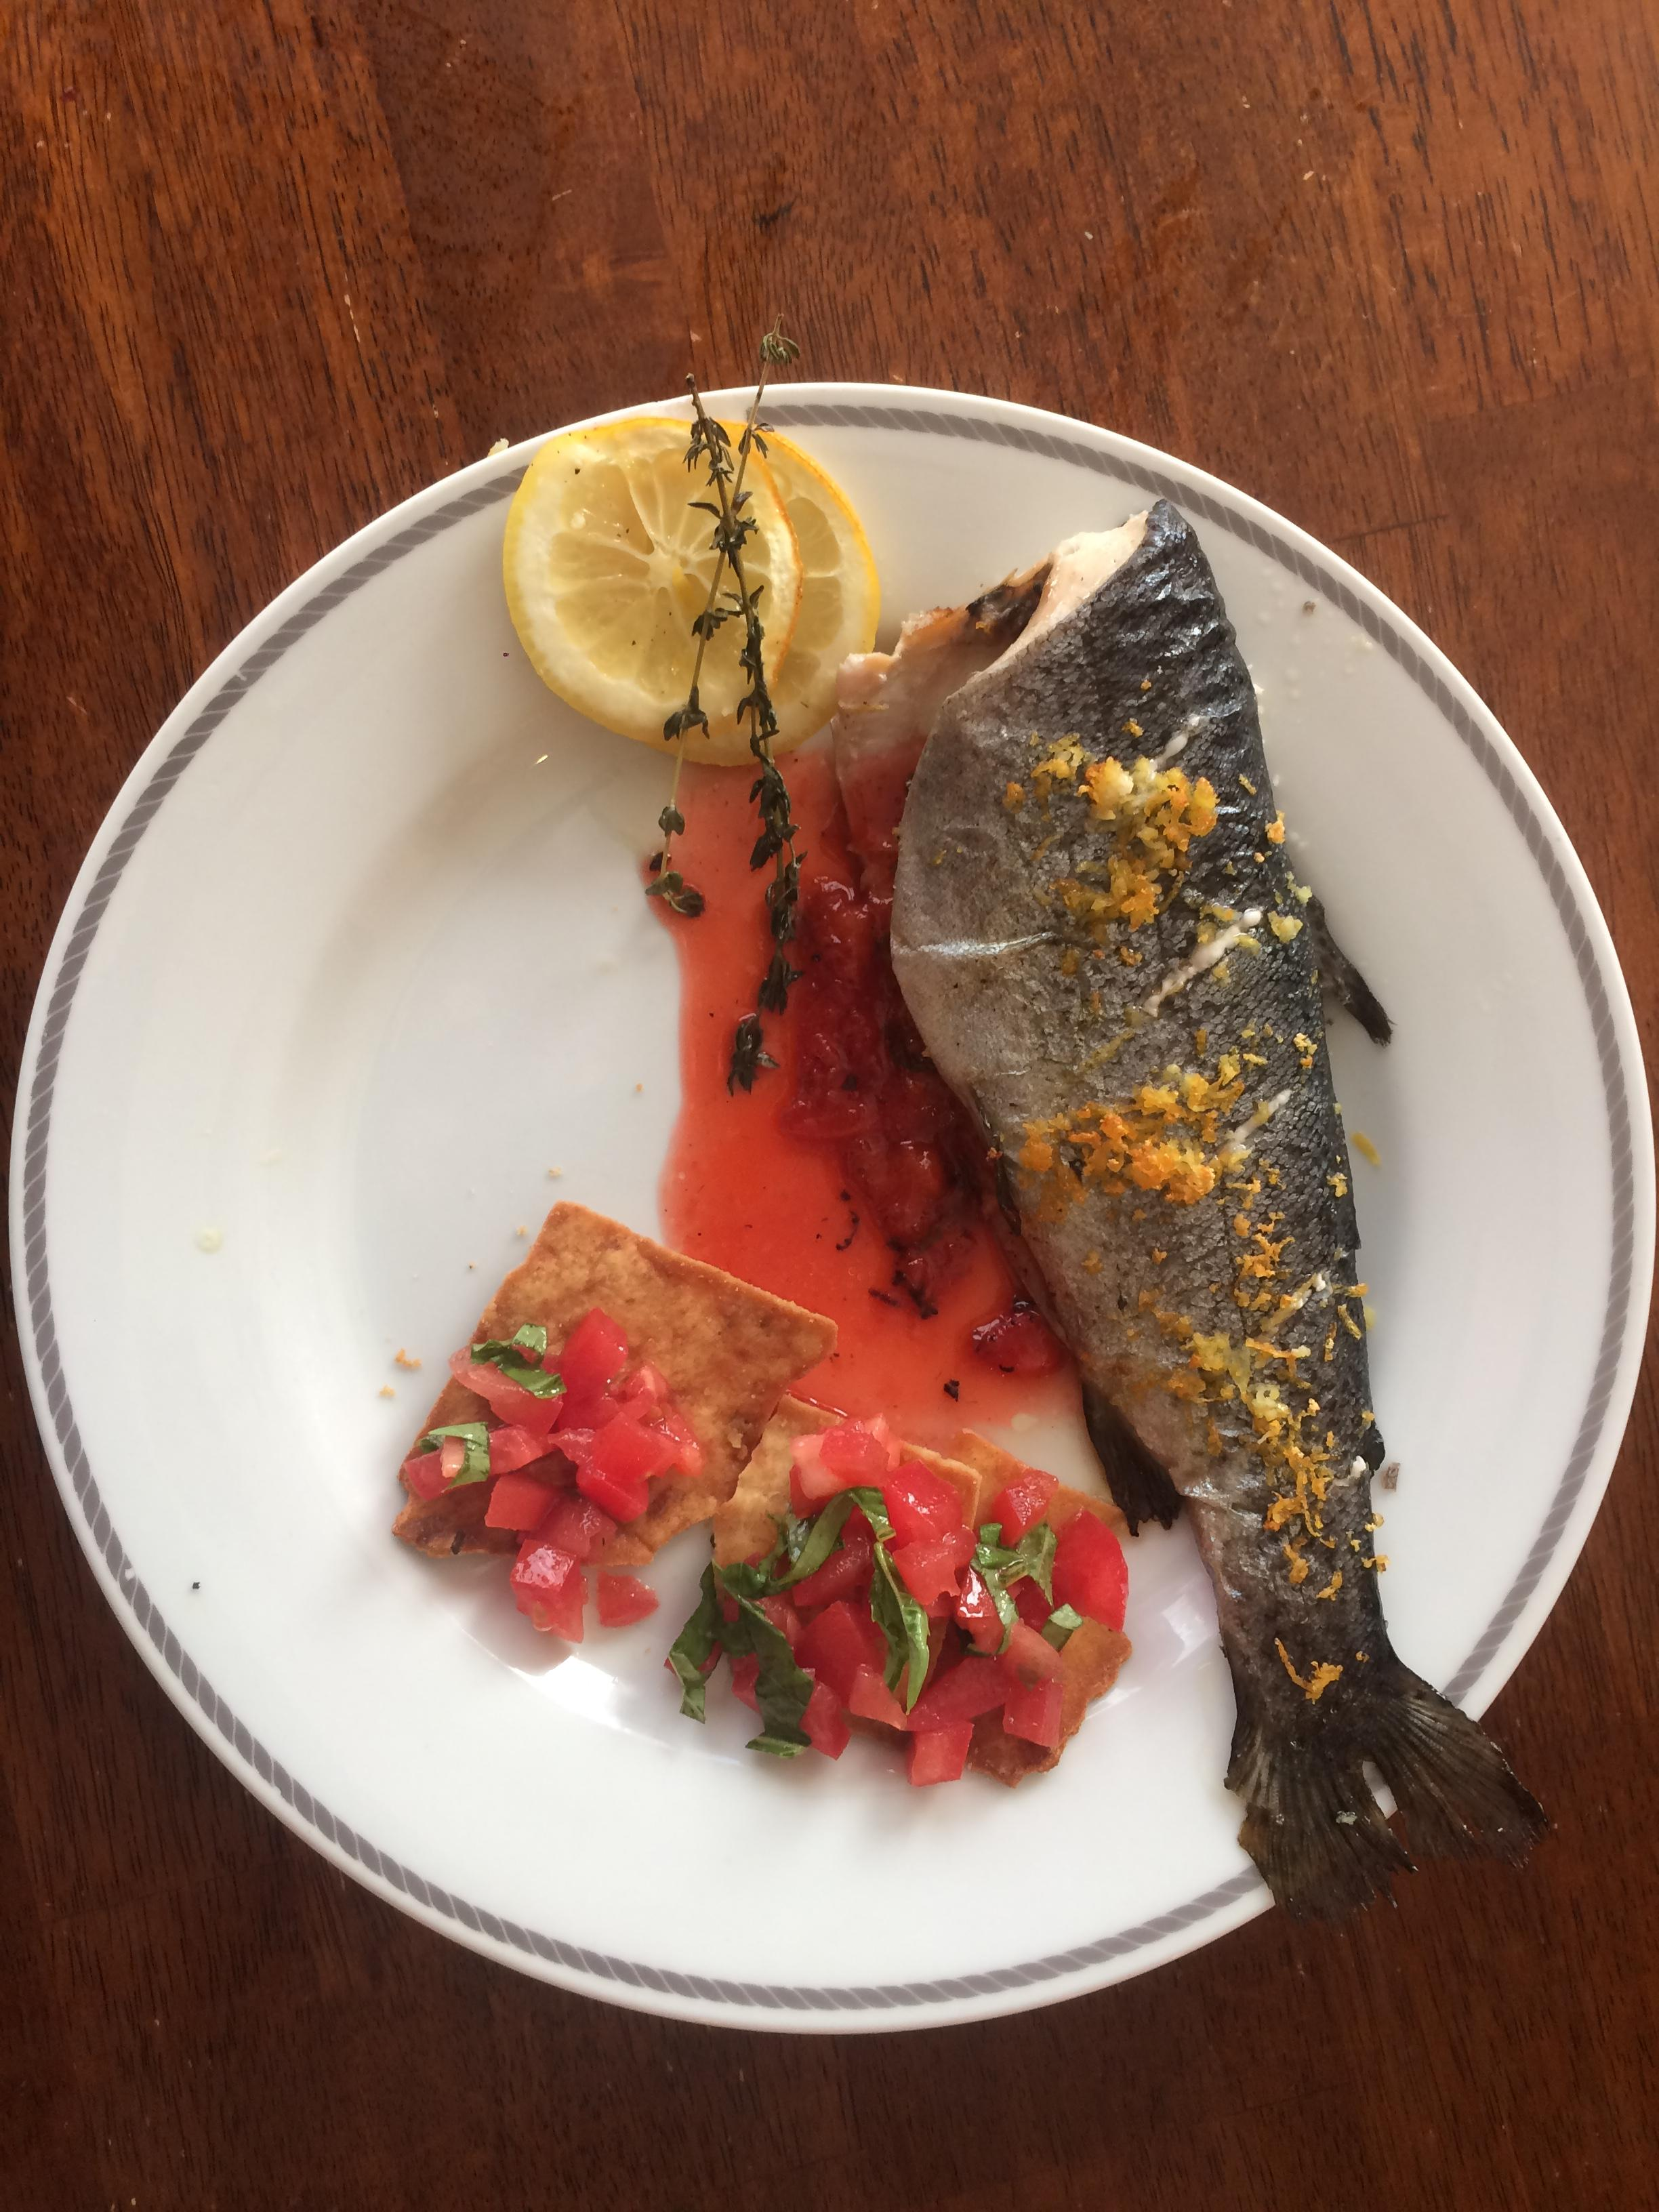 """Baked rainbow trout"" by Karen Ullo (CatholicMom.com)"